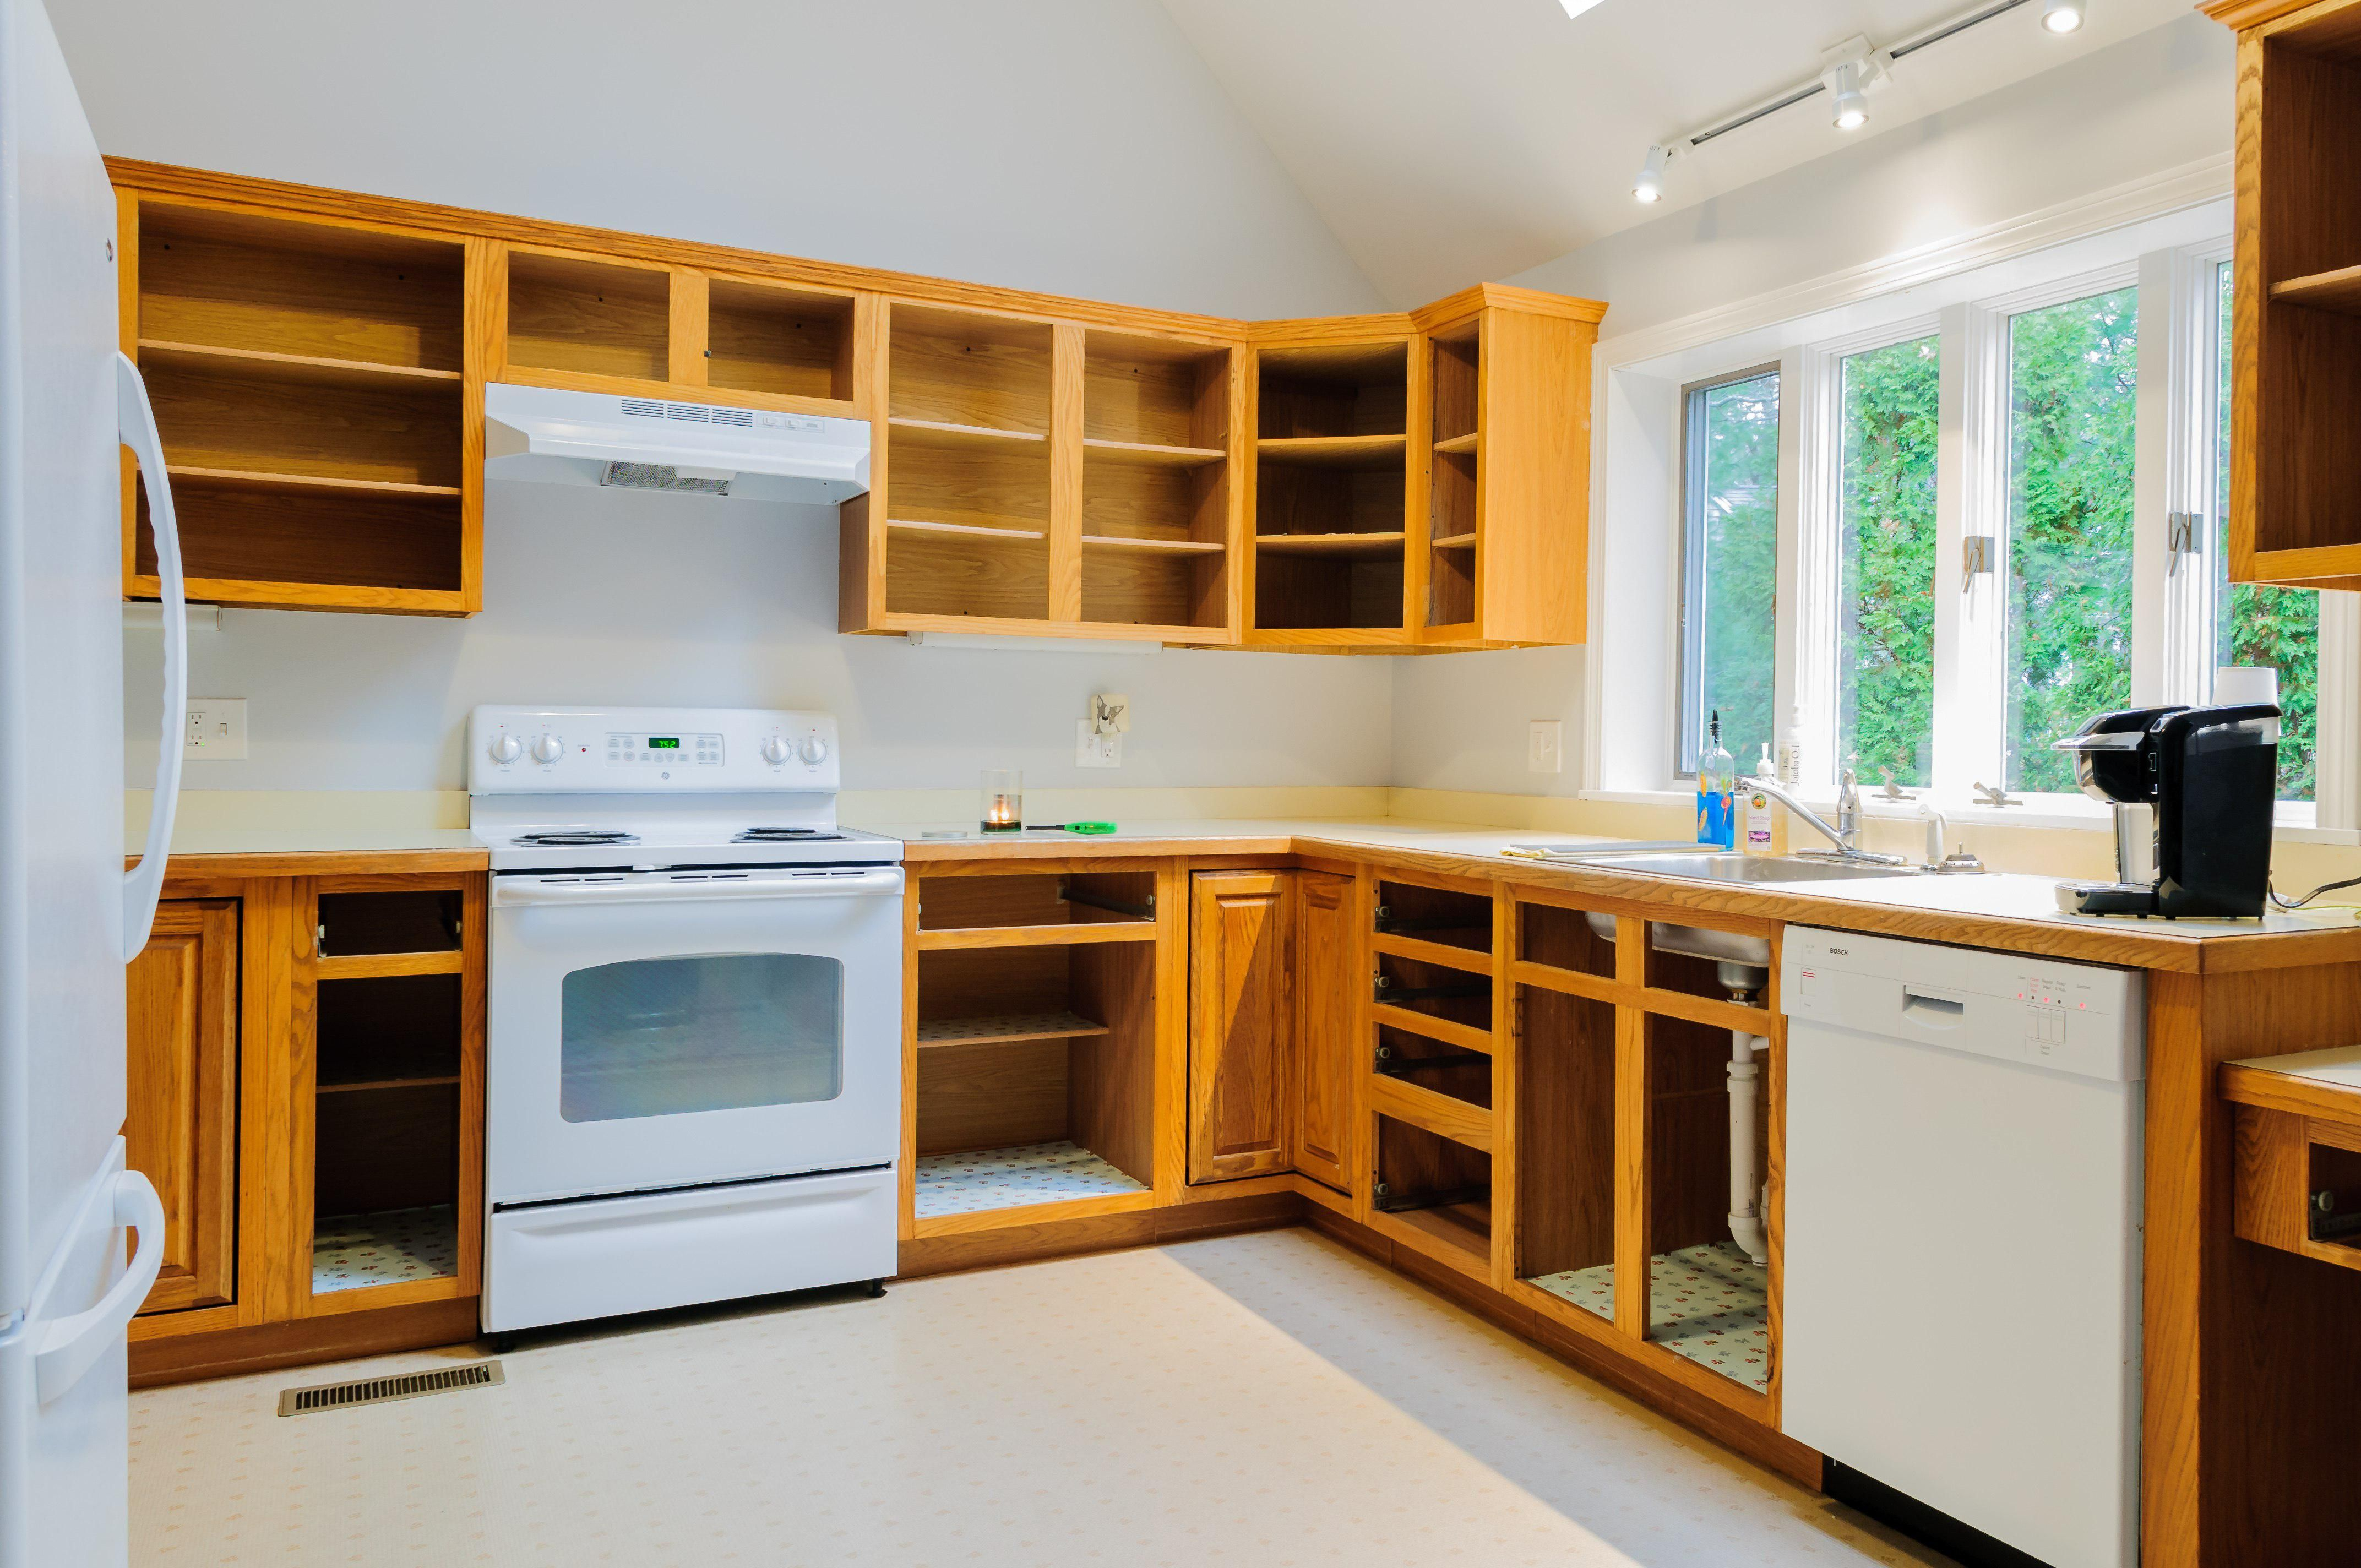 Image Of Refacing Kitchen Cabinets Design Ideas Yentua Com Replacing Kitchen Cabinets Refacing Kitchen Cabinets Cost Of New Kitchen